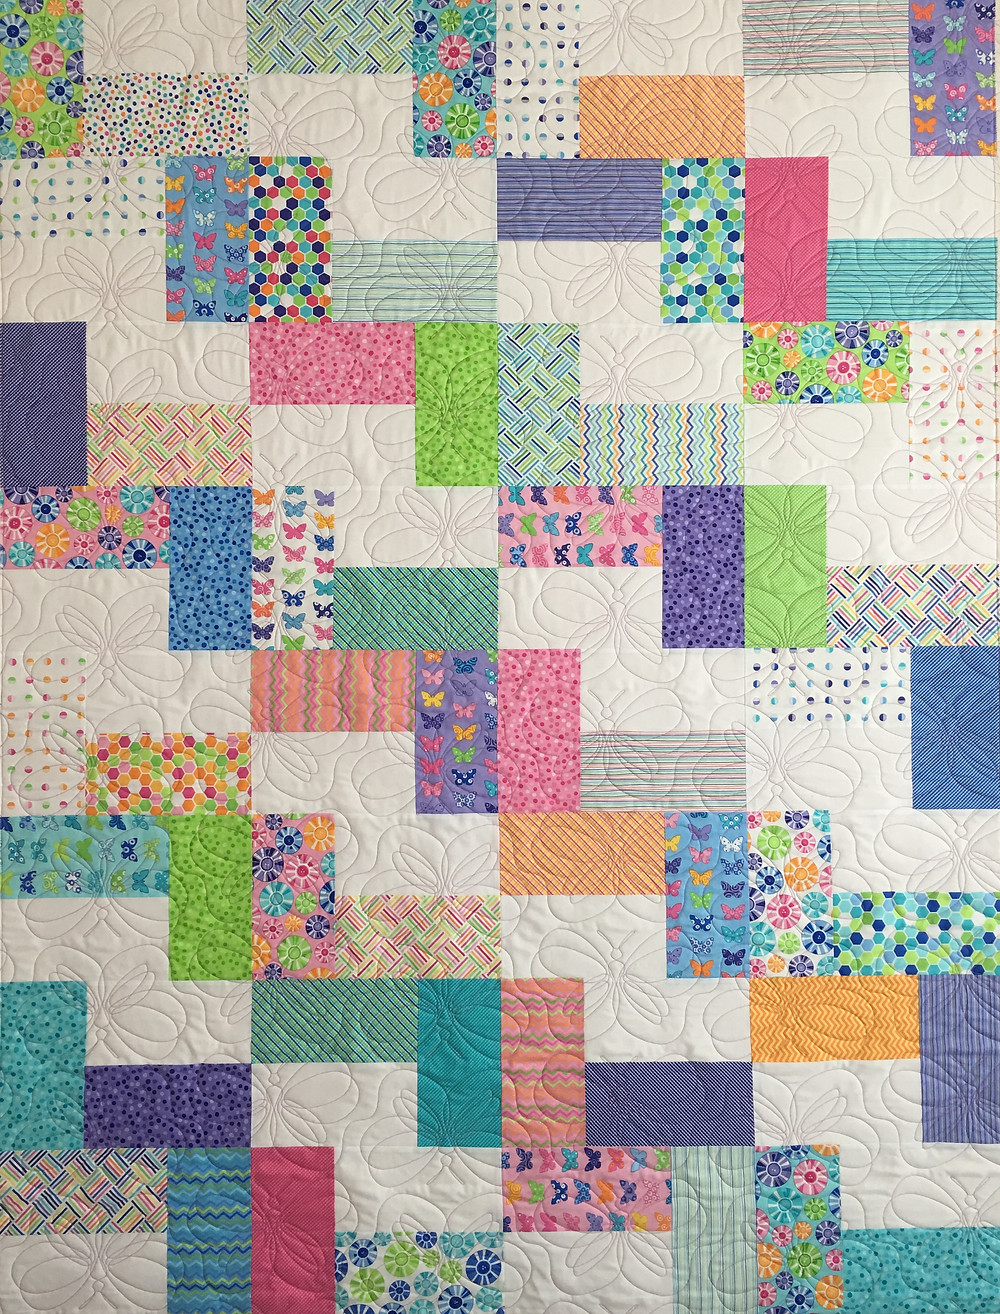 Colorful Quilt for Niece by Delfina Guerra